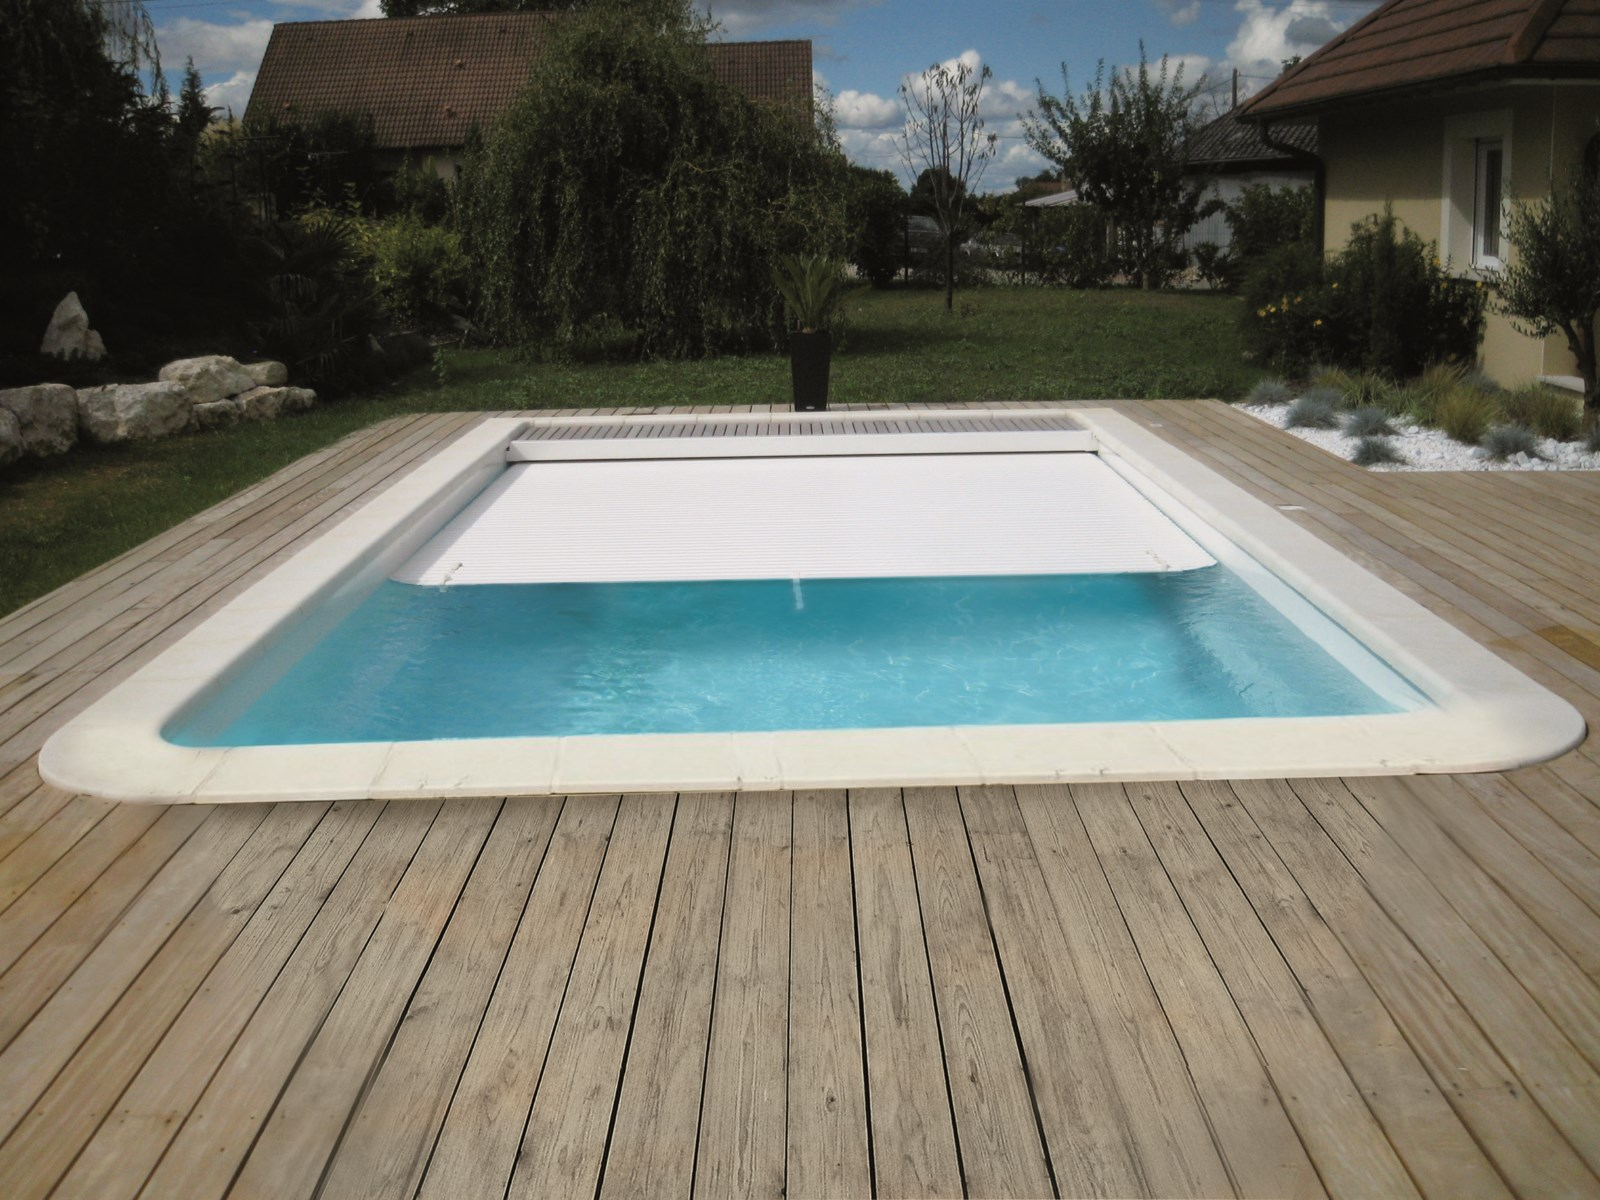 Piscine coque polyester rectangulaire mod le born o avec for Piscine en coque